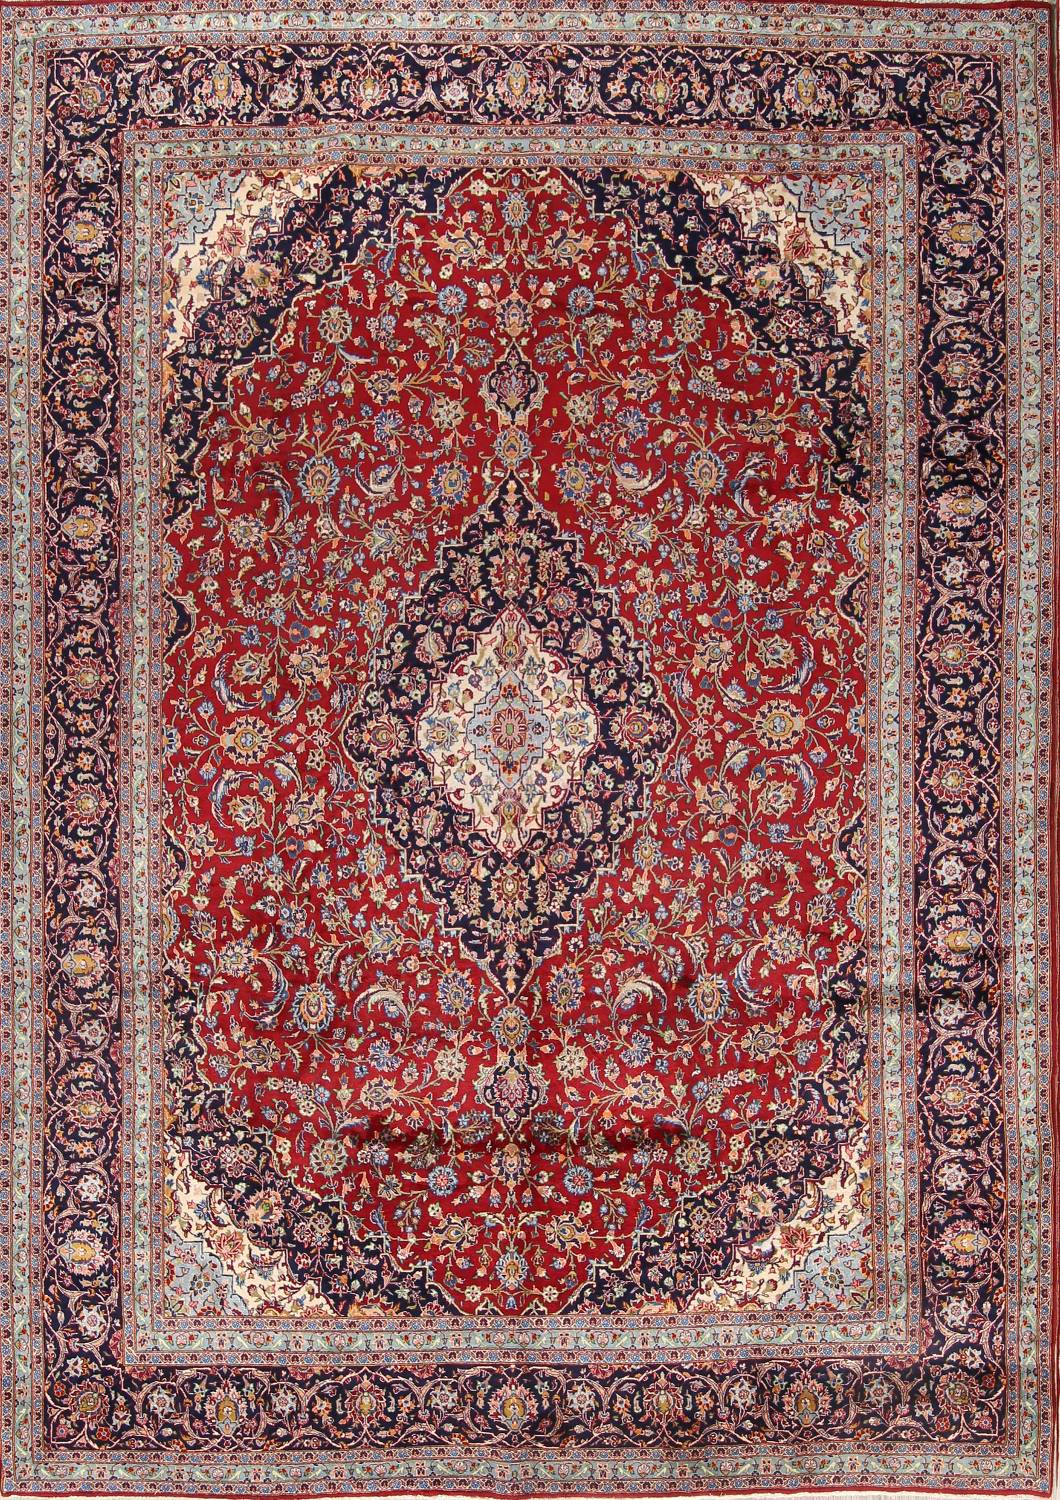 Traditional Floral 10x14 Kashan Persian Area Rug image 1